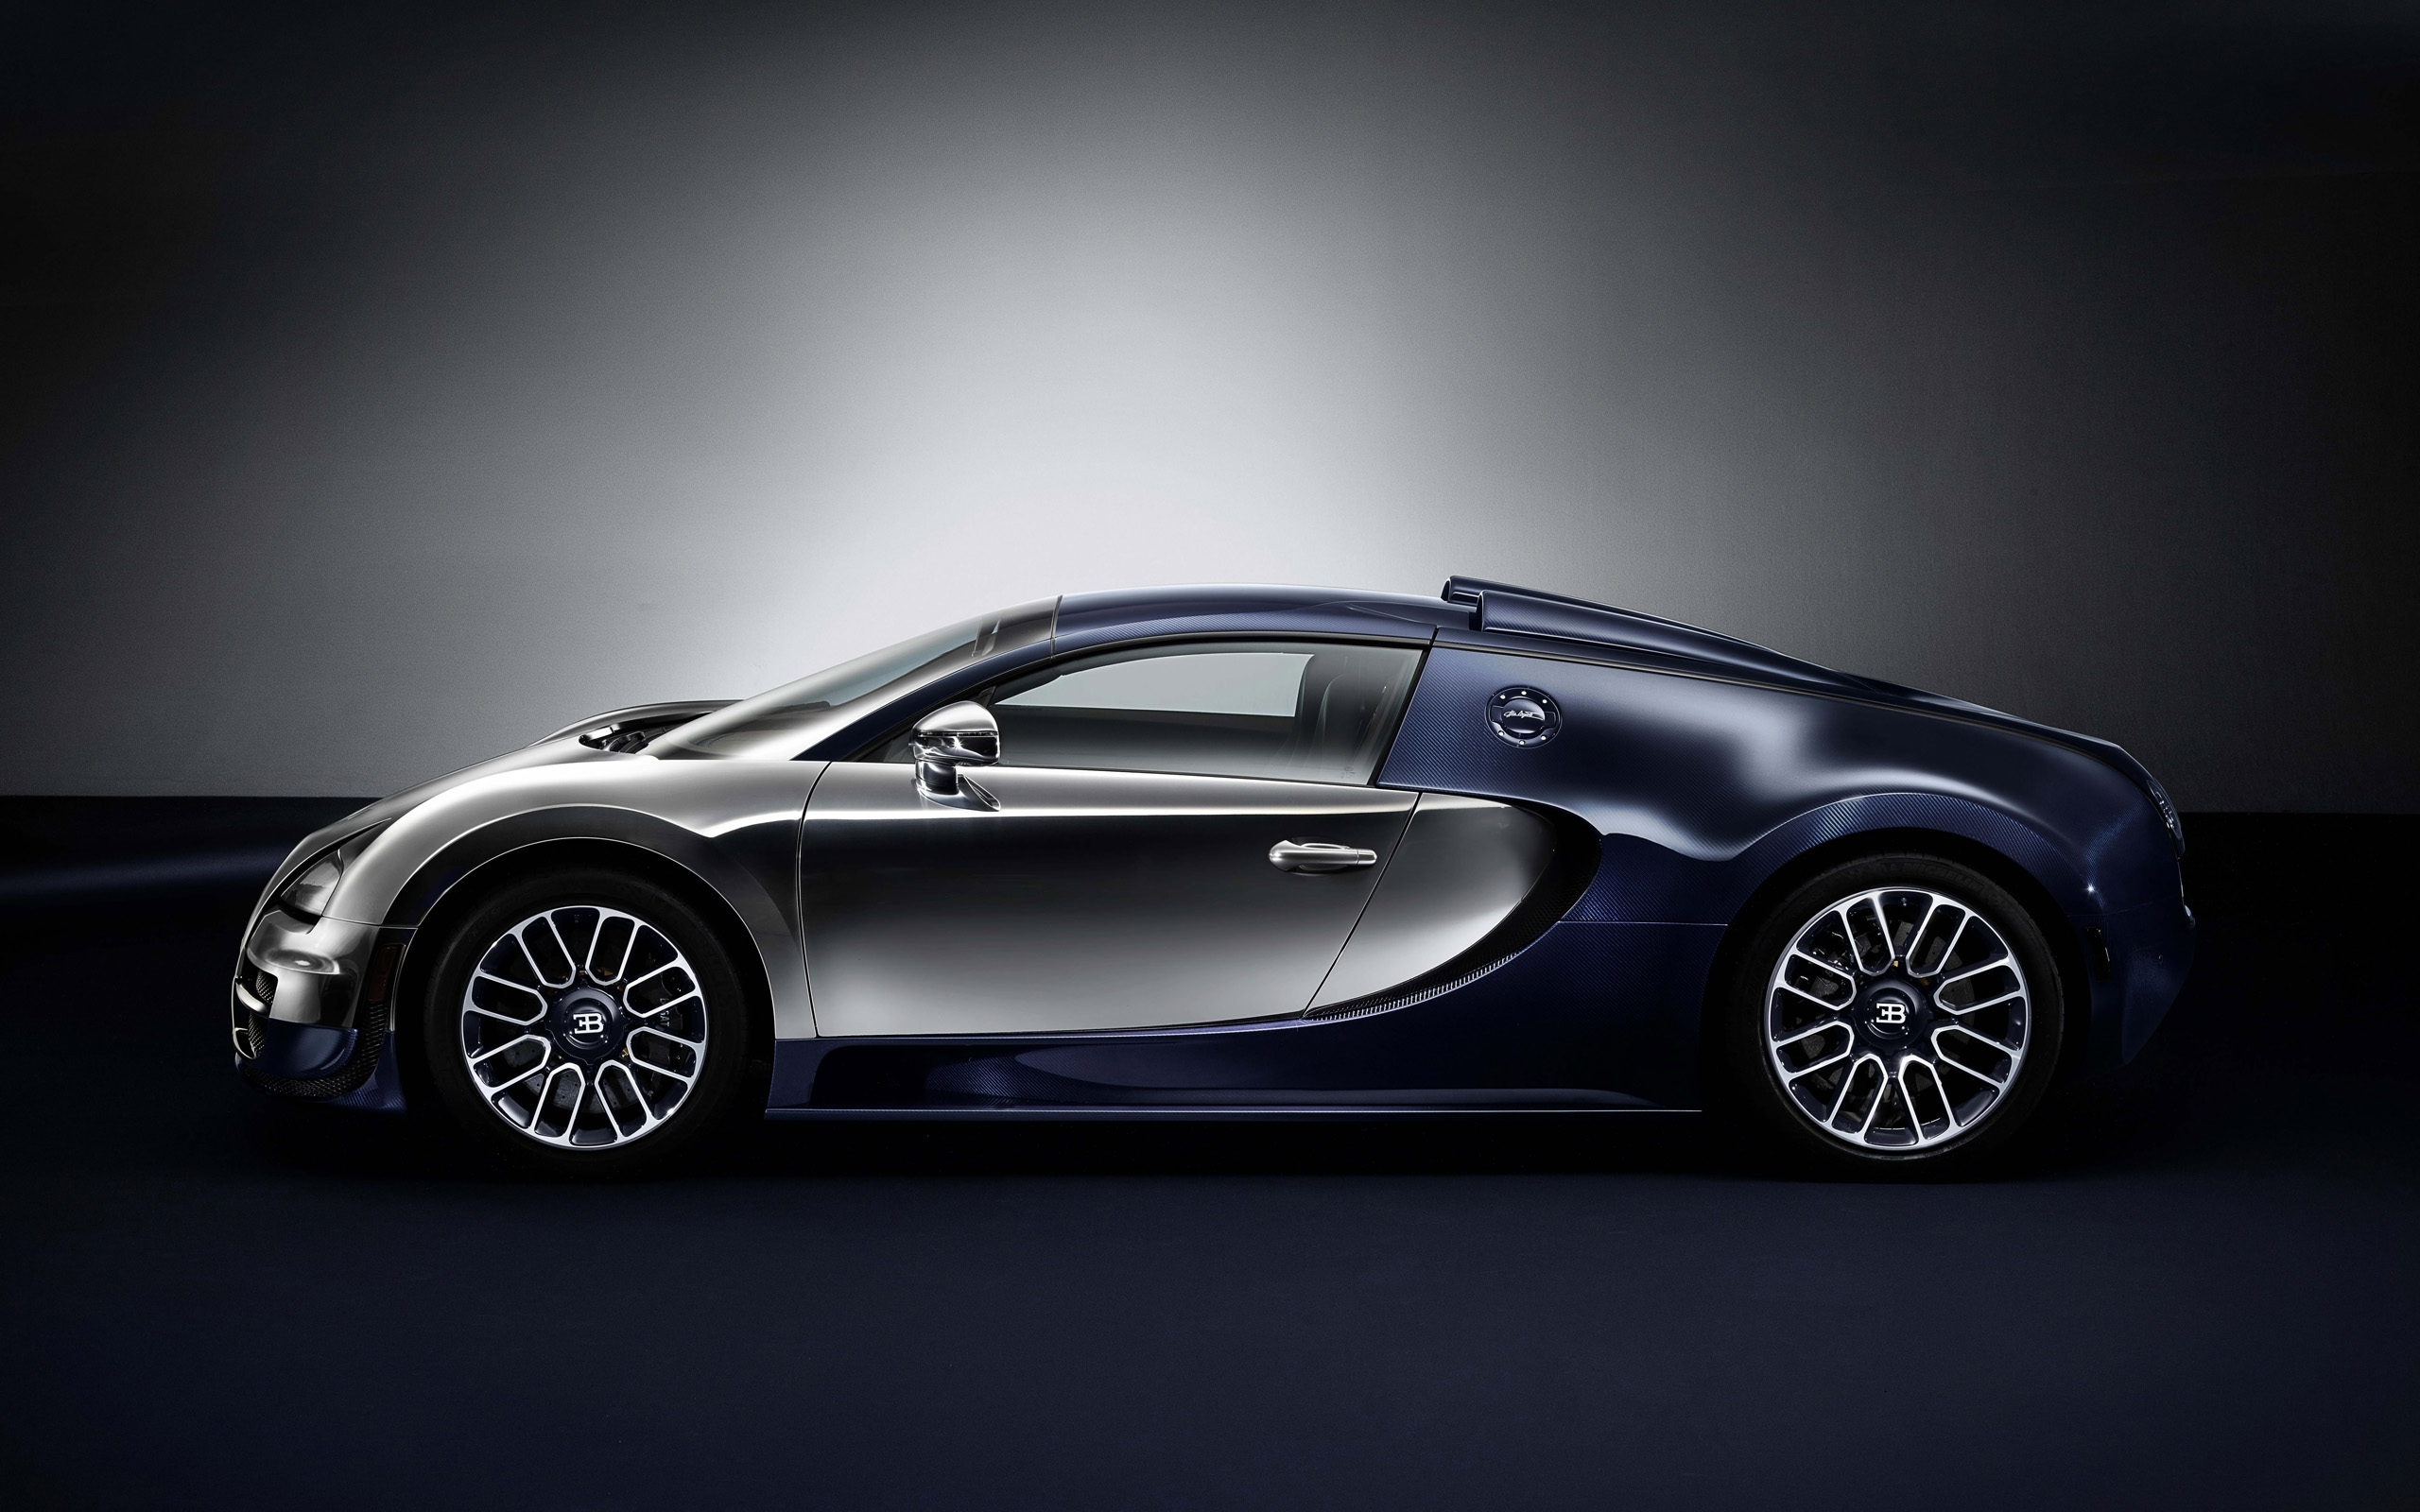 2014 bugatti veyron ettore bugatti legend edition. Black Bedroom Furniture Sets. Home Design Ideas